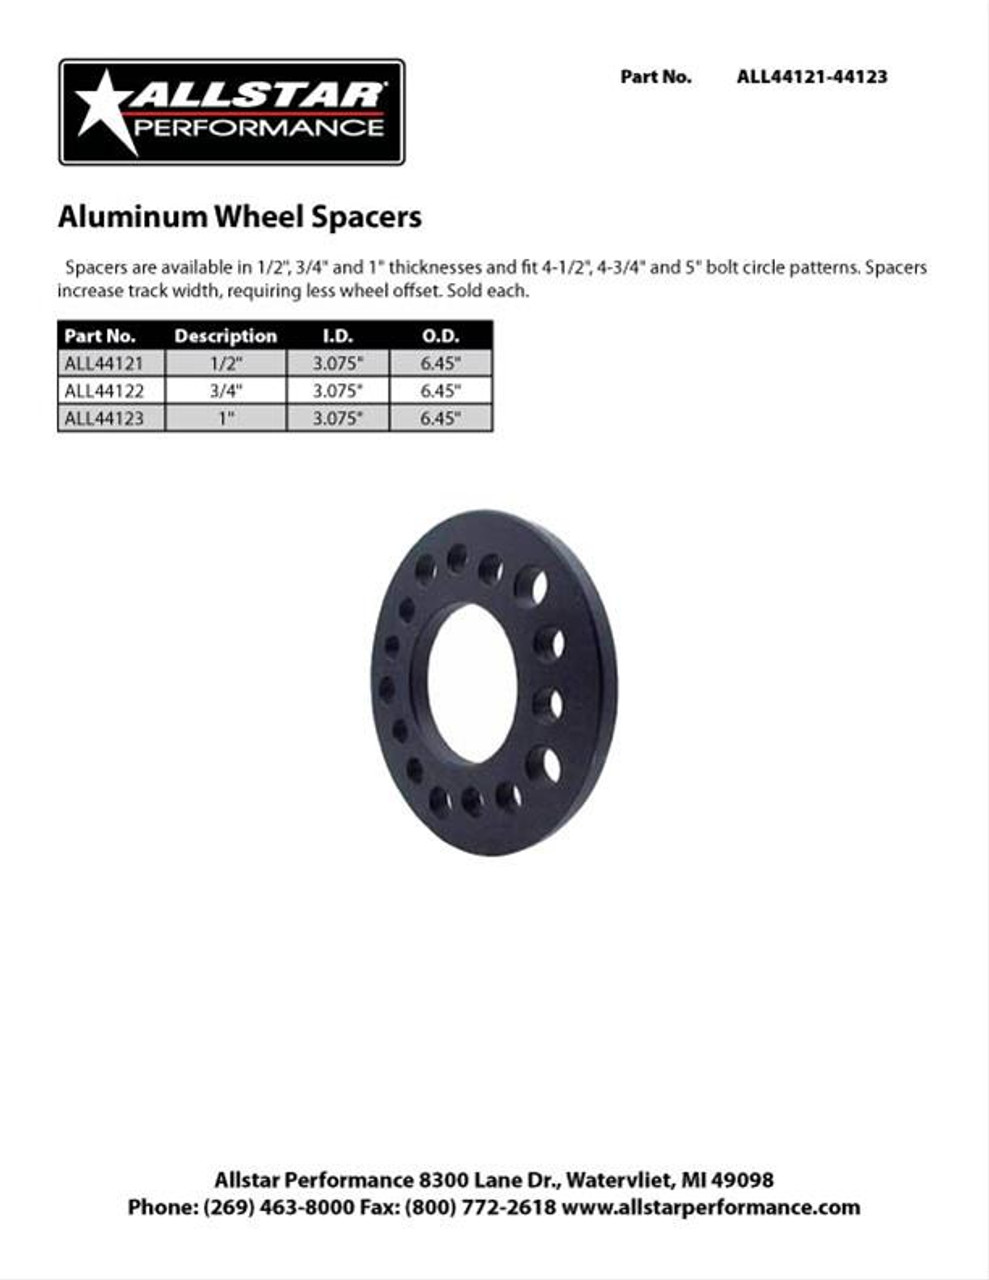 Allstar Performance 5 Lug 1/2 In. Thick Aluminum Wheel Spacer ALL44121 (SPEC SHEET)